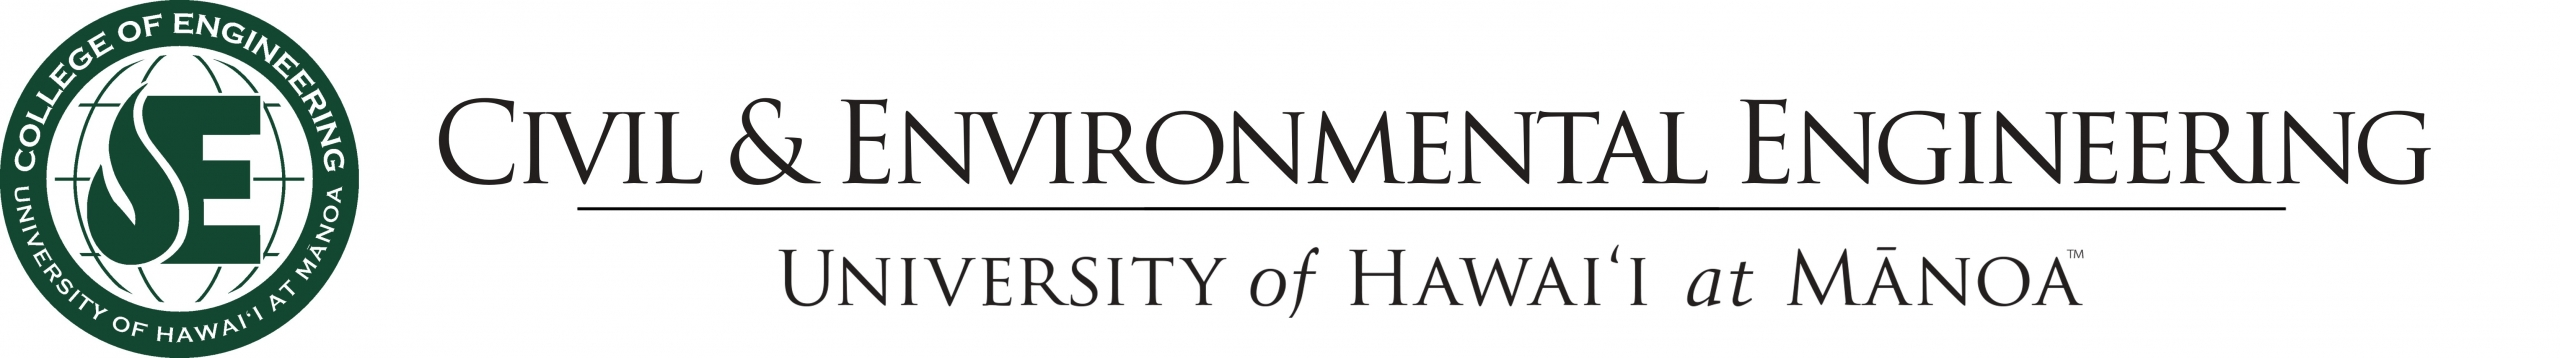 Civil & Environmental Engineering Department- University of Hawaii at Manoa